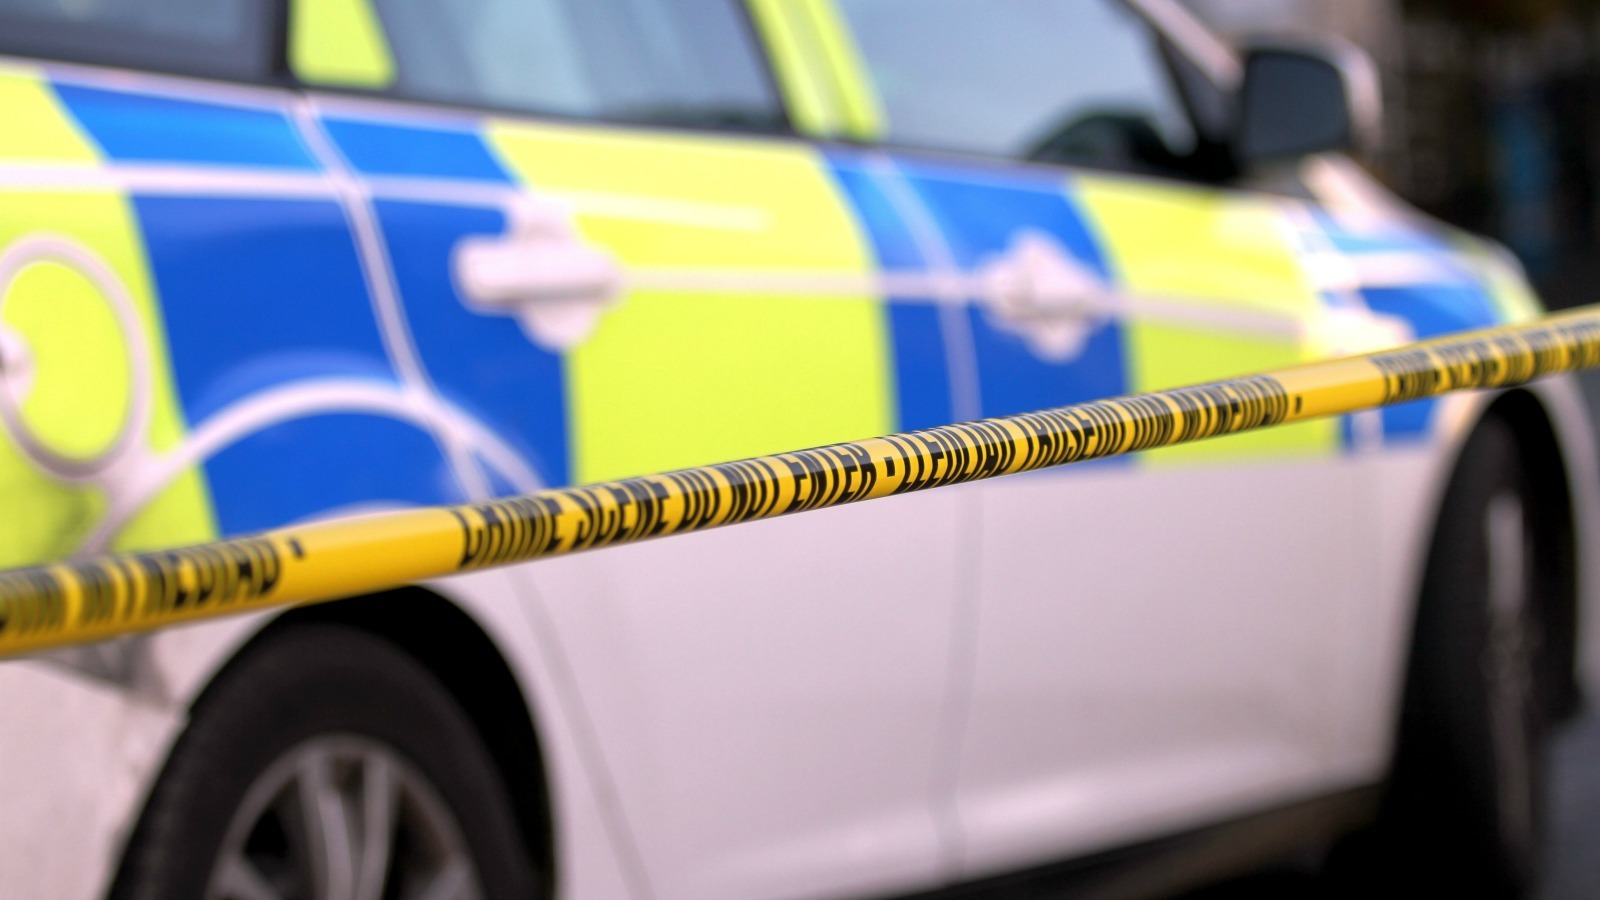 Young man from Ellesmere Port arrested as part of Cheshire police crackdown on county lines drug crime